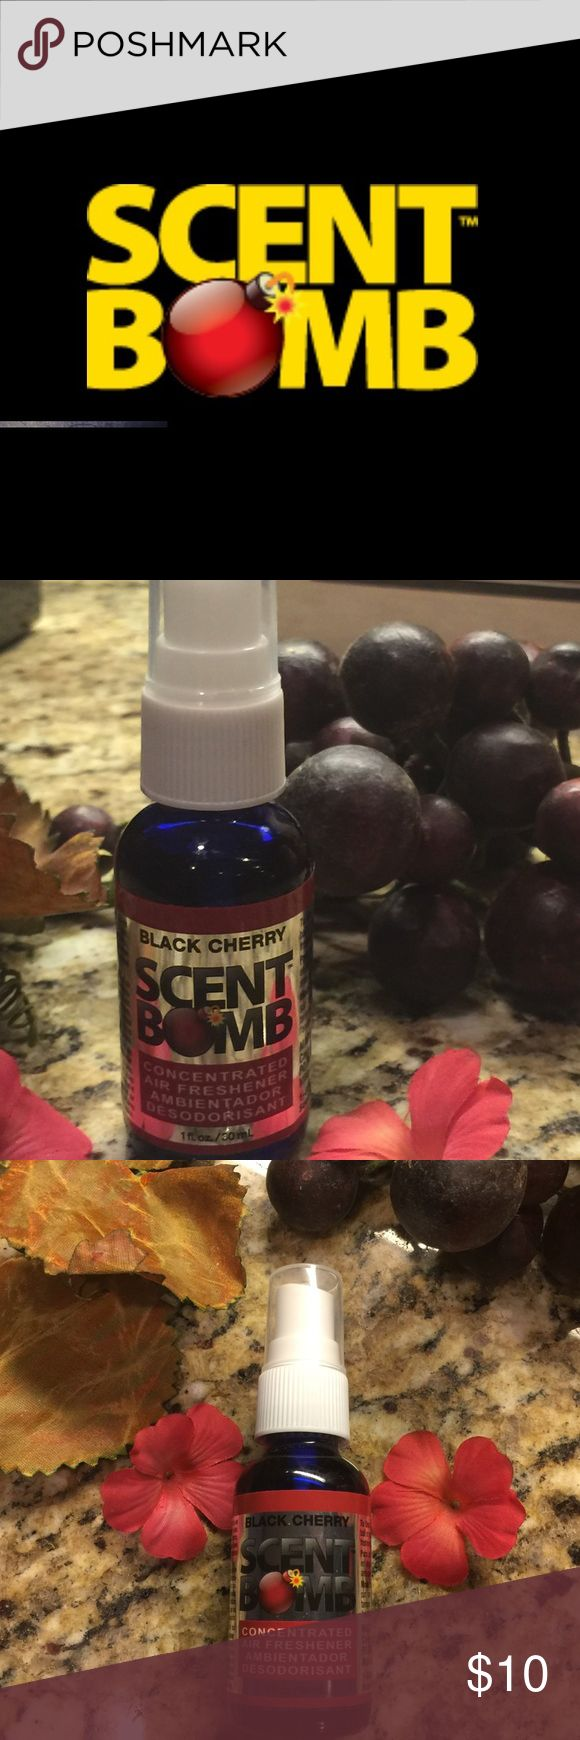 Scent Bomb Black Cherry 🍒 Air Freshener Super Strong Scent Bomb Car 🚗  Home 🏡 Office Air Freshener Highly Concentrated 1oz Blow Away Bad Odors  Instau2026